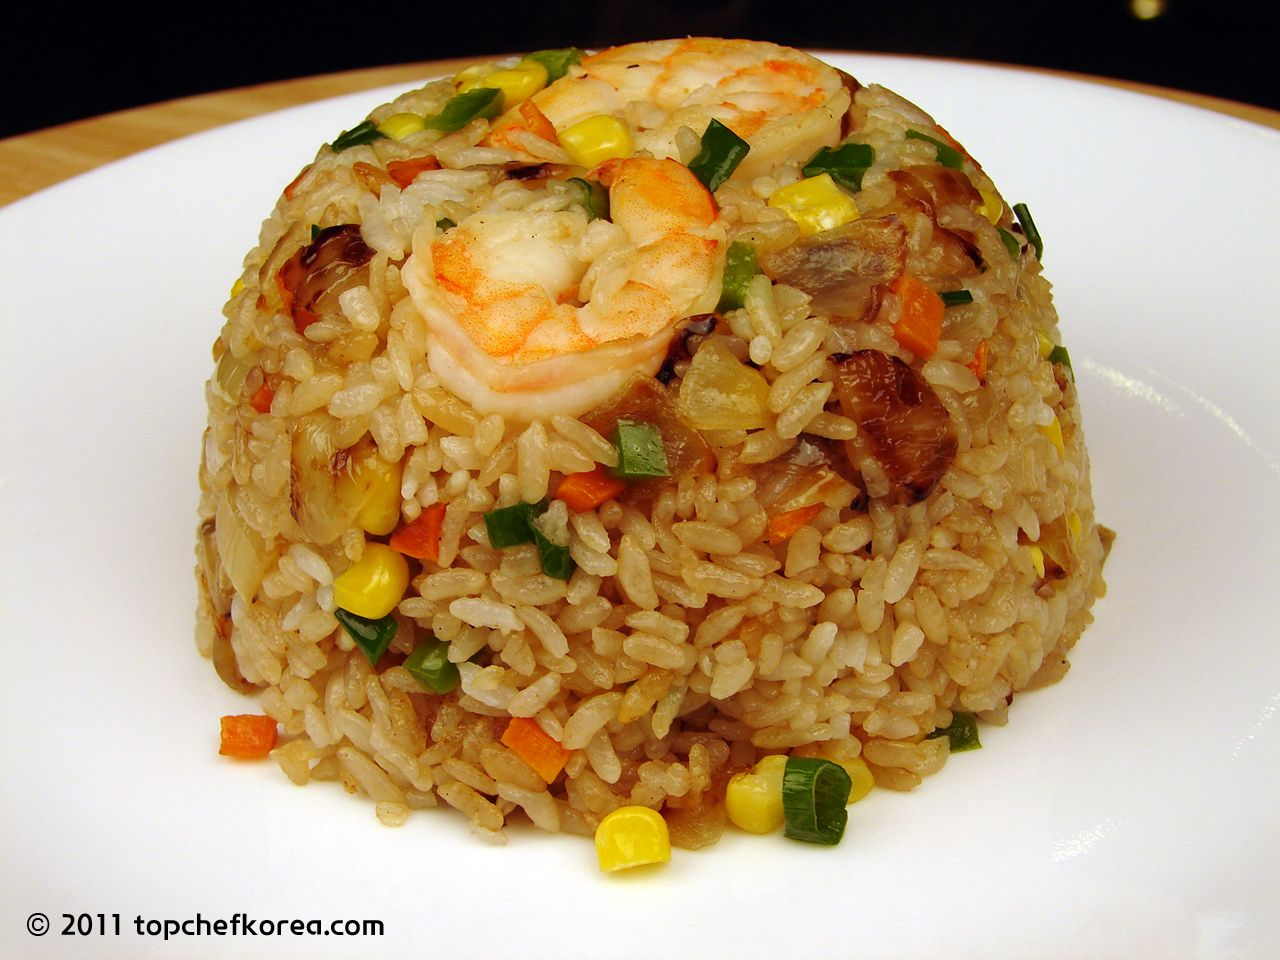 Shrimp fried rice top chef korea authentic korean shrimp fried rice top chef korea authentic korean food recipes forumfinder Images